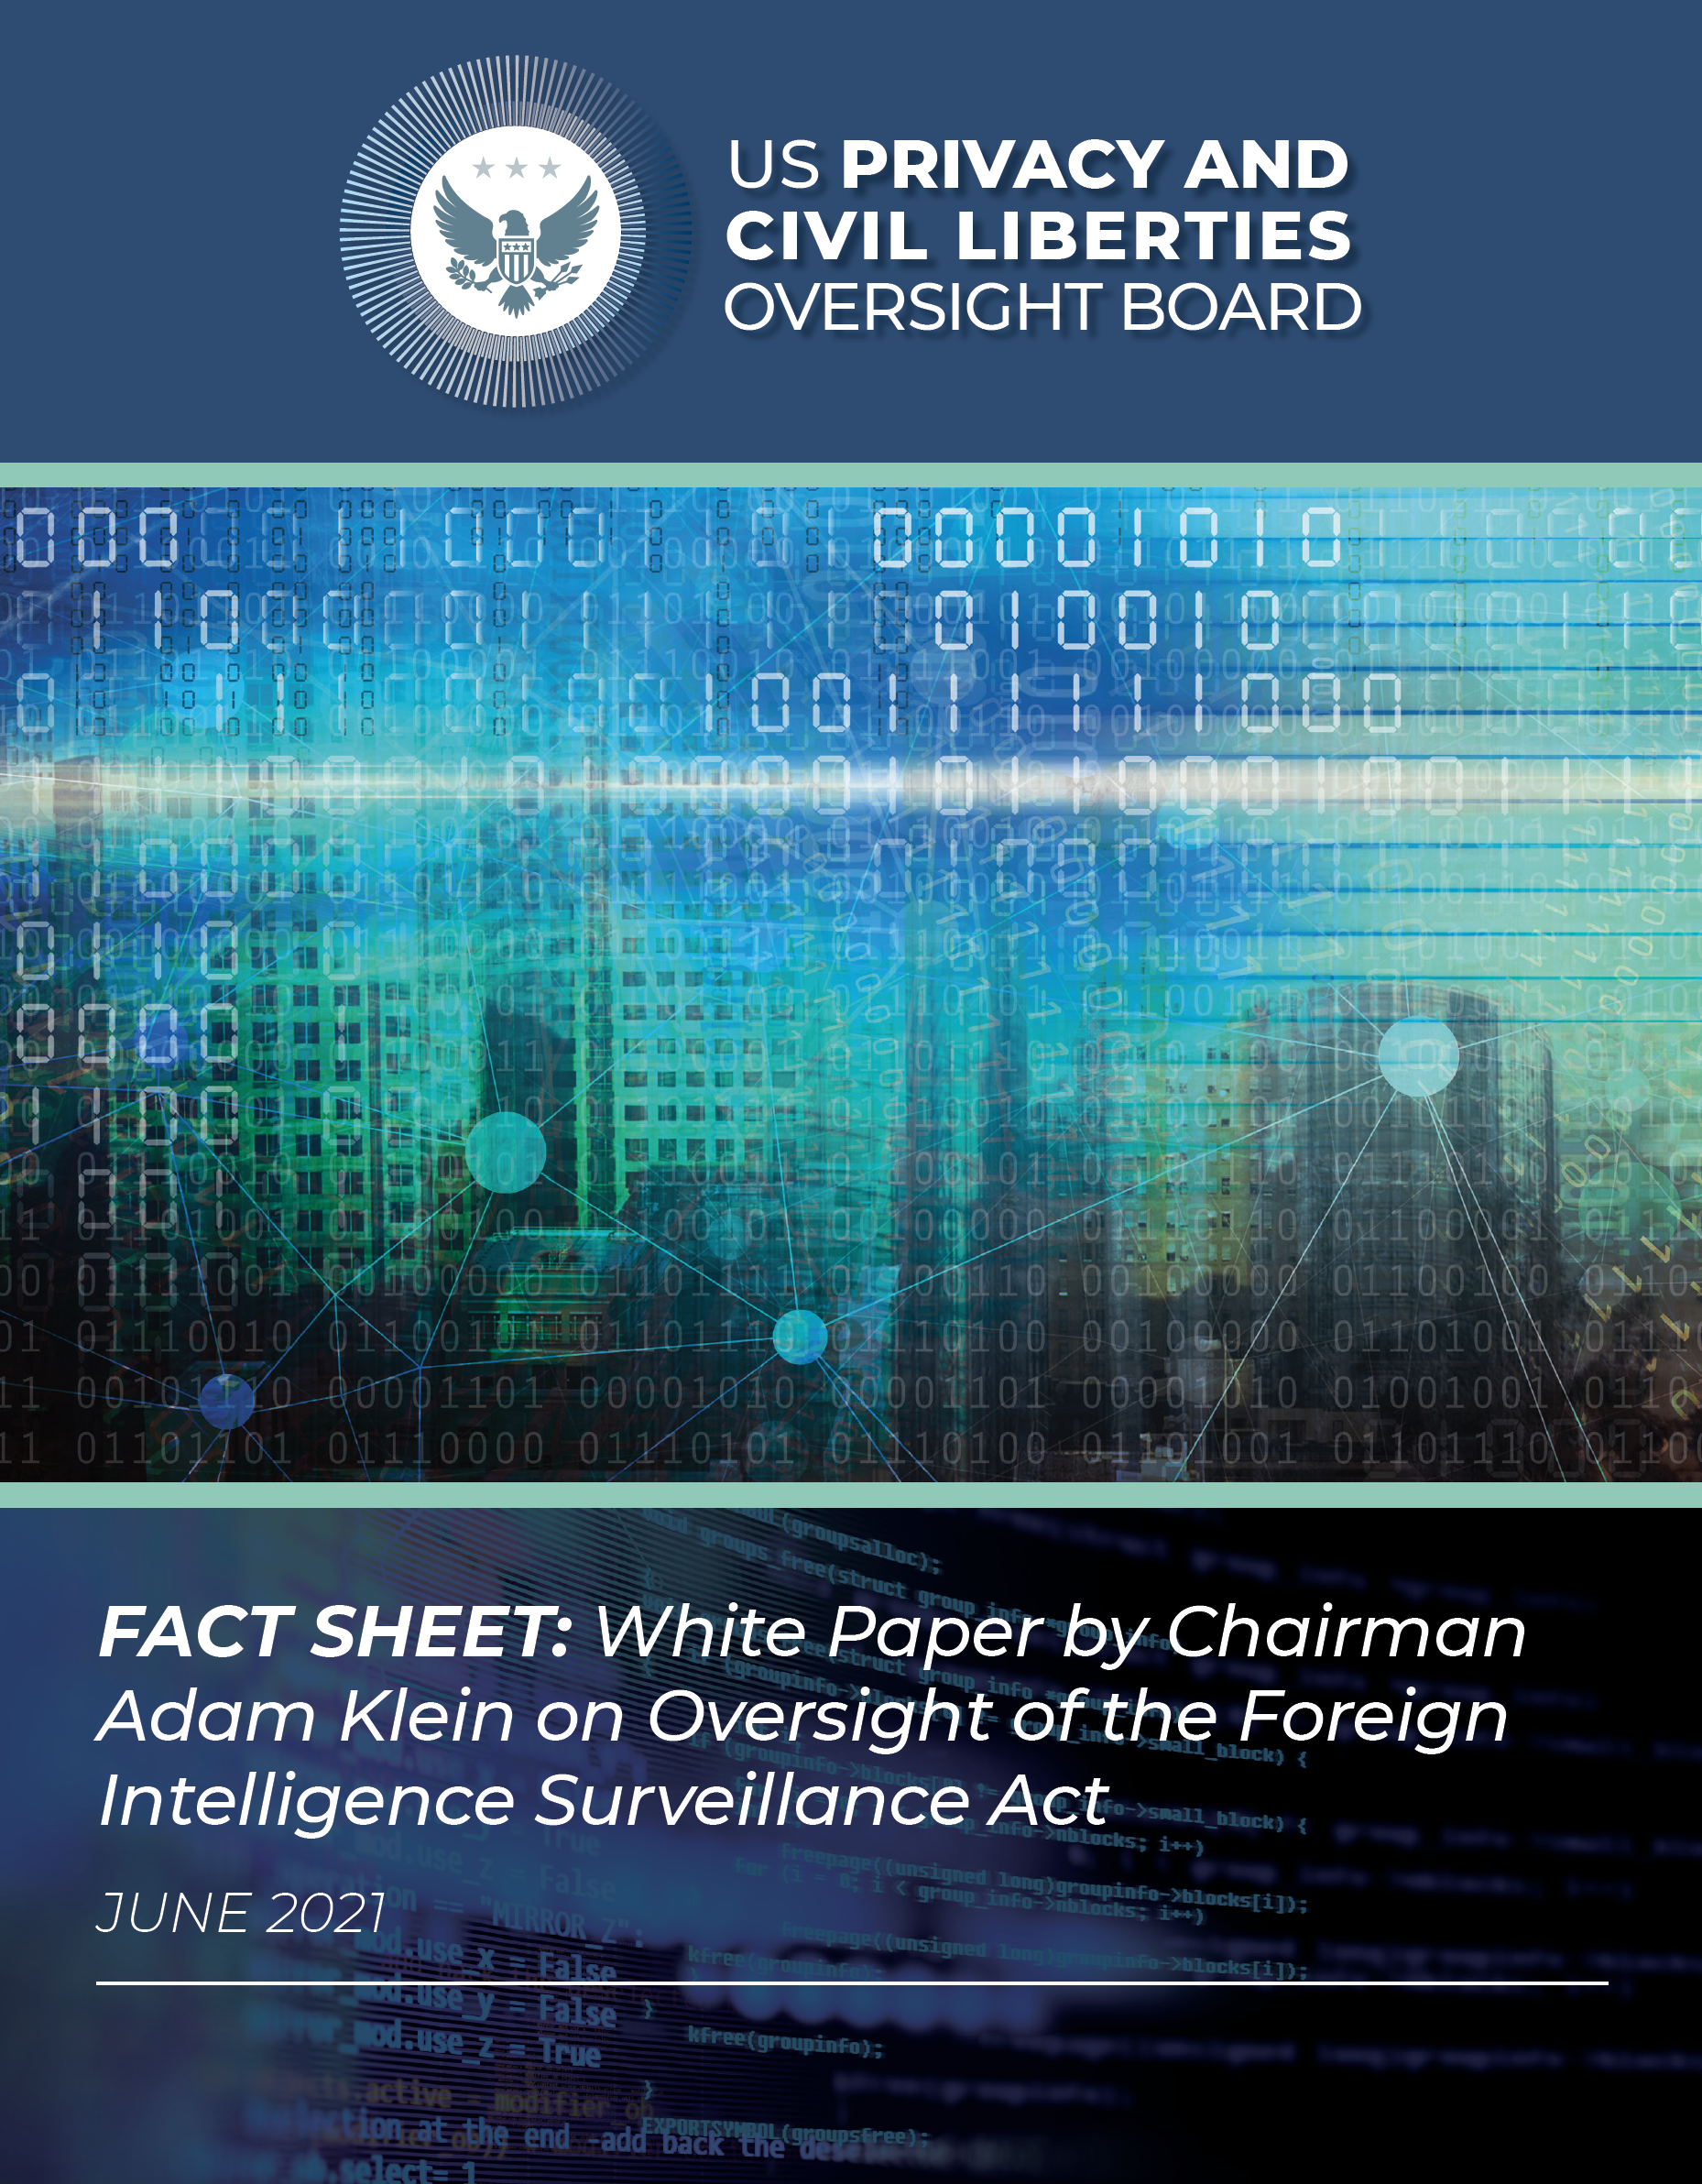 Chairman's FISA White Paper - Chairman's White Paper: Oversight of the Foreign Intelligence Surveillance Act